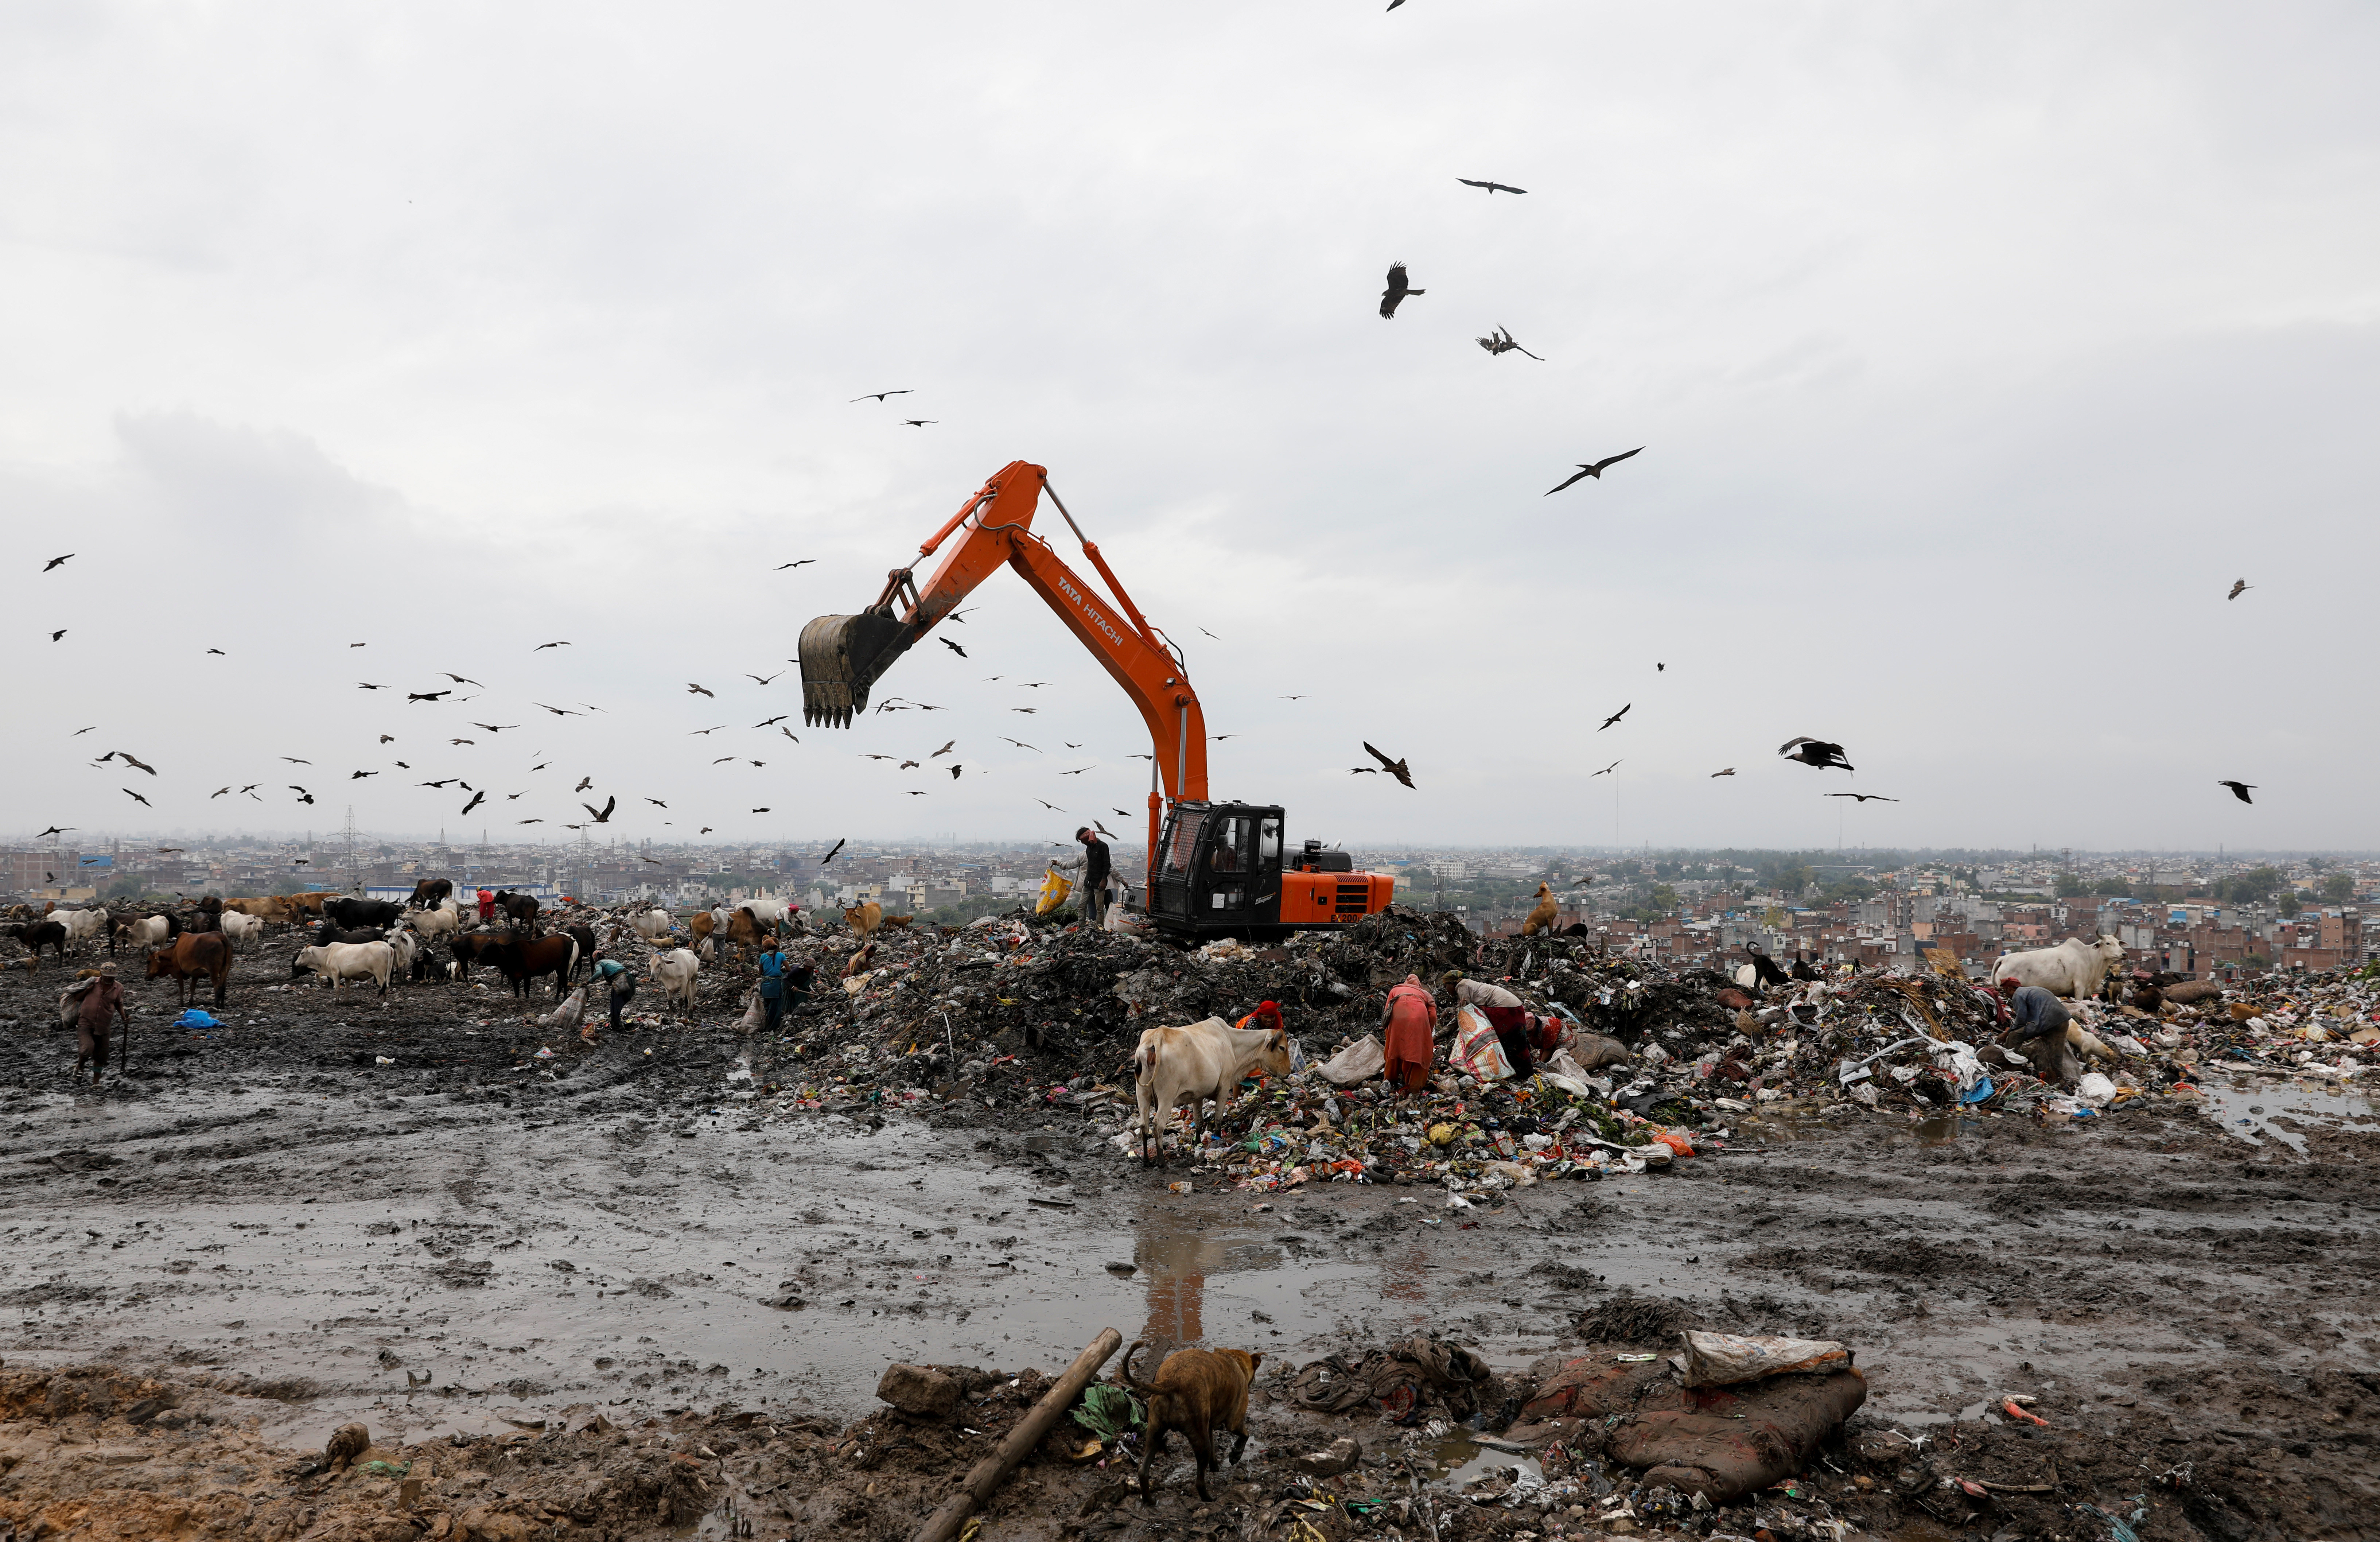 Waste collectors look for recyclable materials at a landfill site.